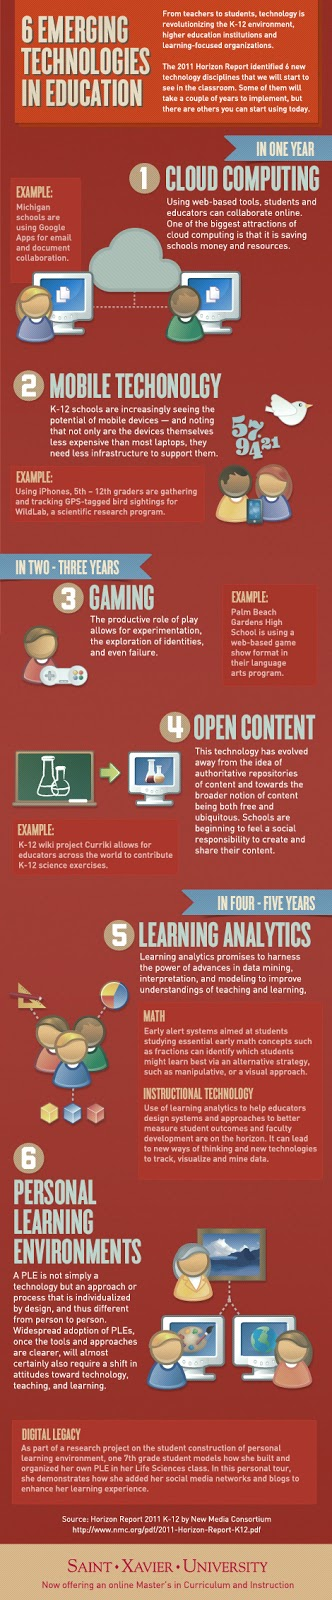 6 Emerging Trends in Higher Education - http://www.peterpappas.com/images//2012/02/six-emerging-technologies-in-education.jpg